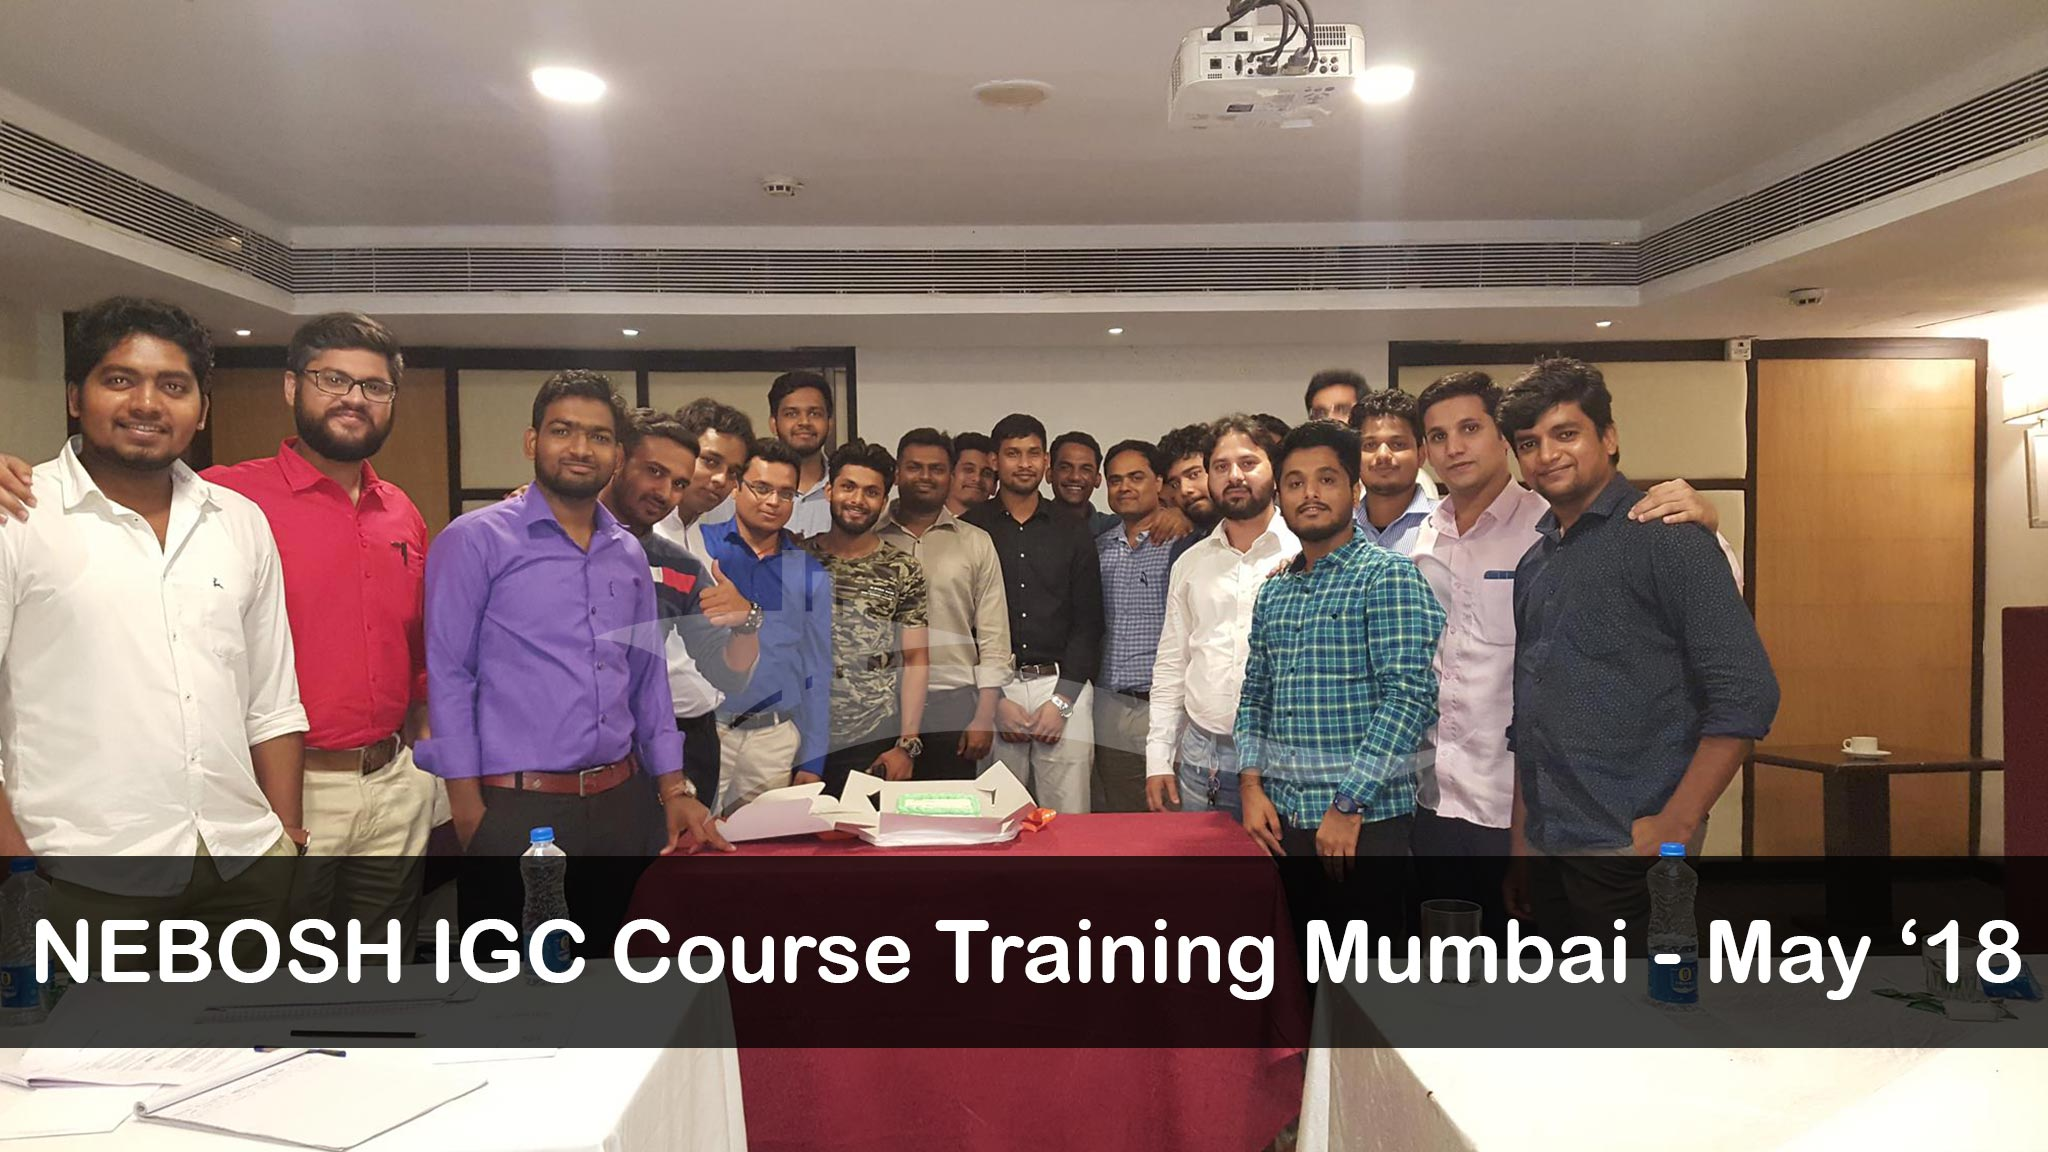 nebosh-igc-course-training-Mumbai